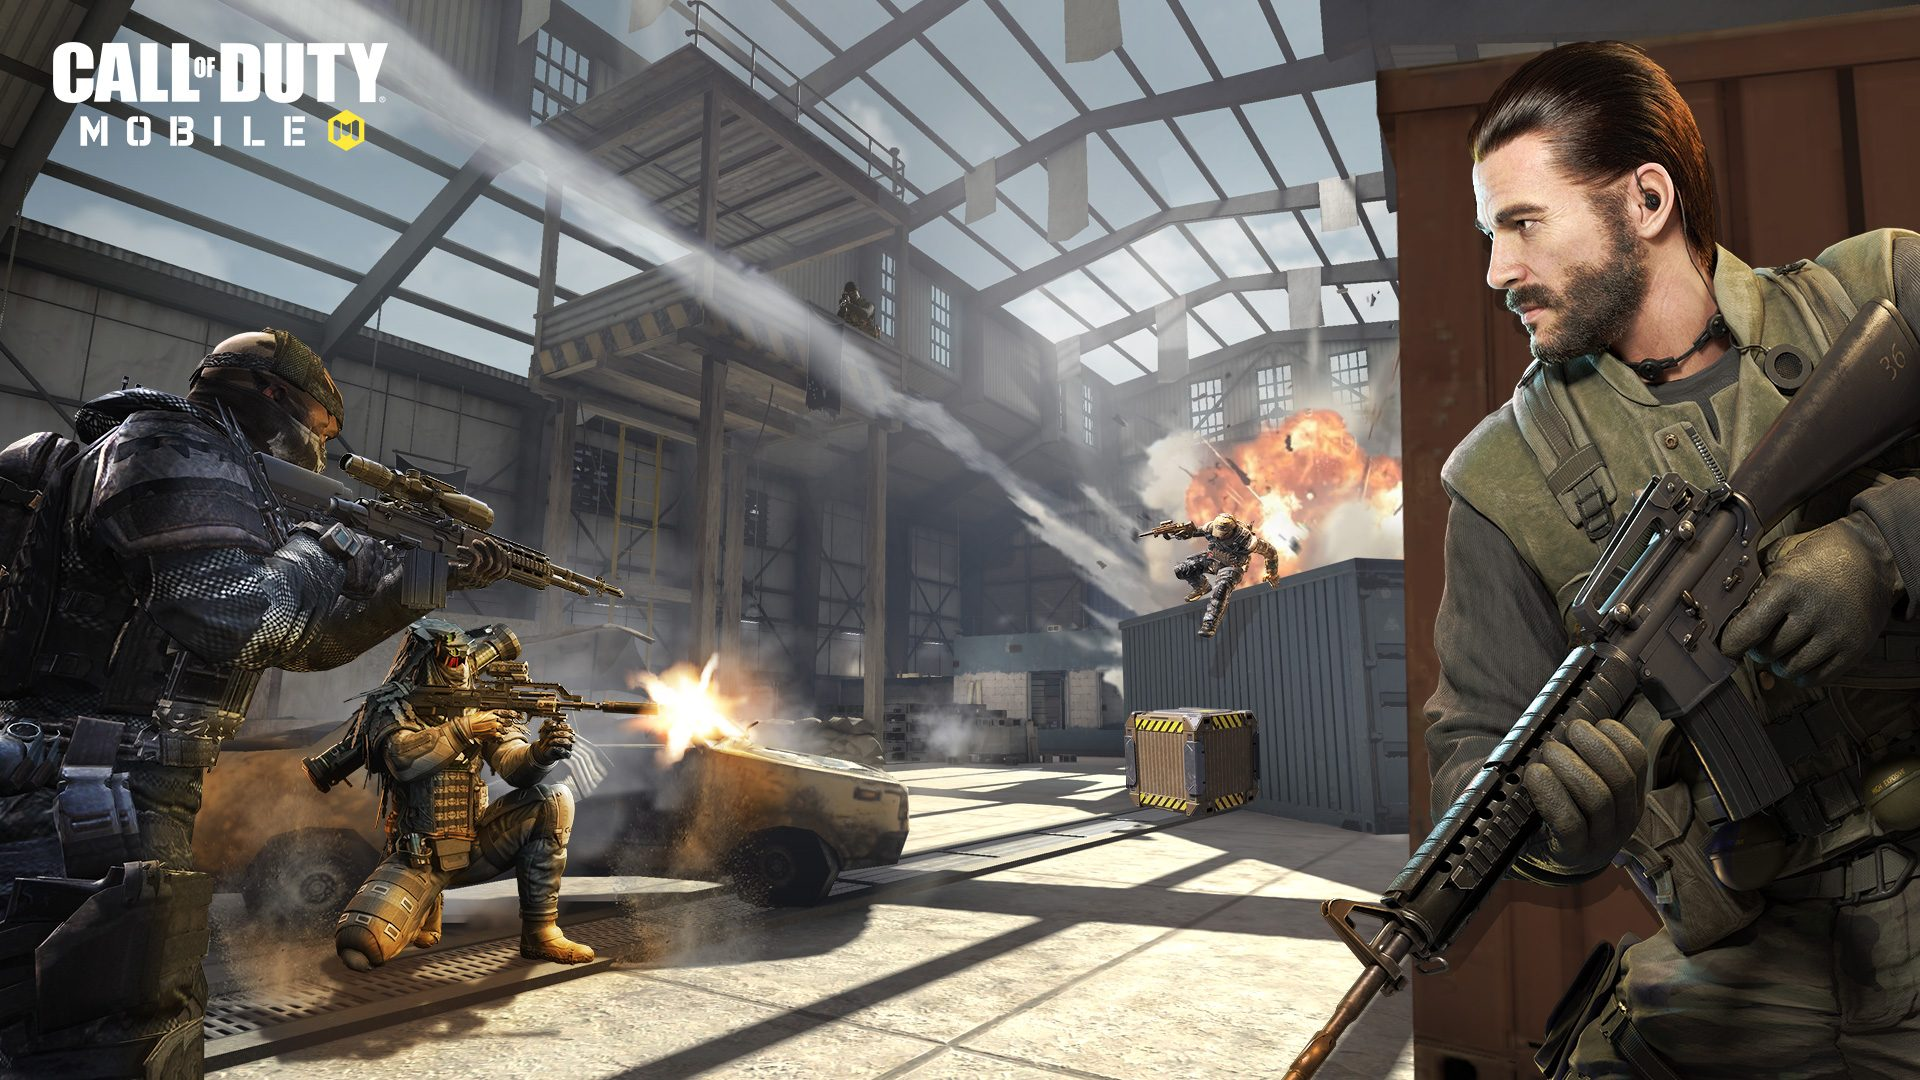 Call of Duty Mobile: in arrivo lo shooter definitivo su Android e iOS 6 Call of Duty Mobile: in arrivo lo shooter definitivo su Android e iOS